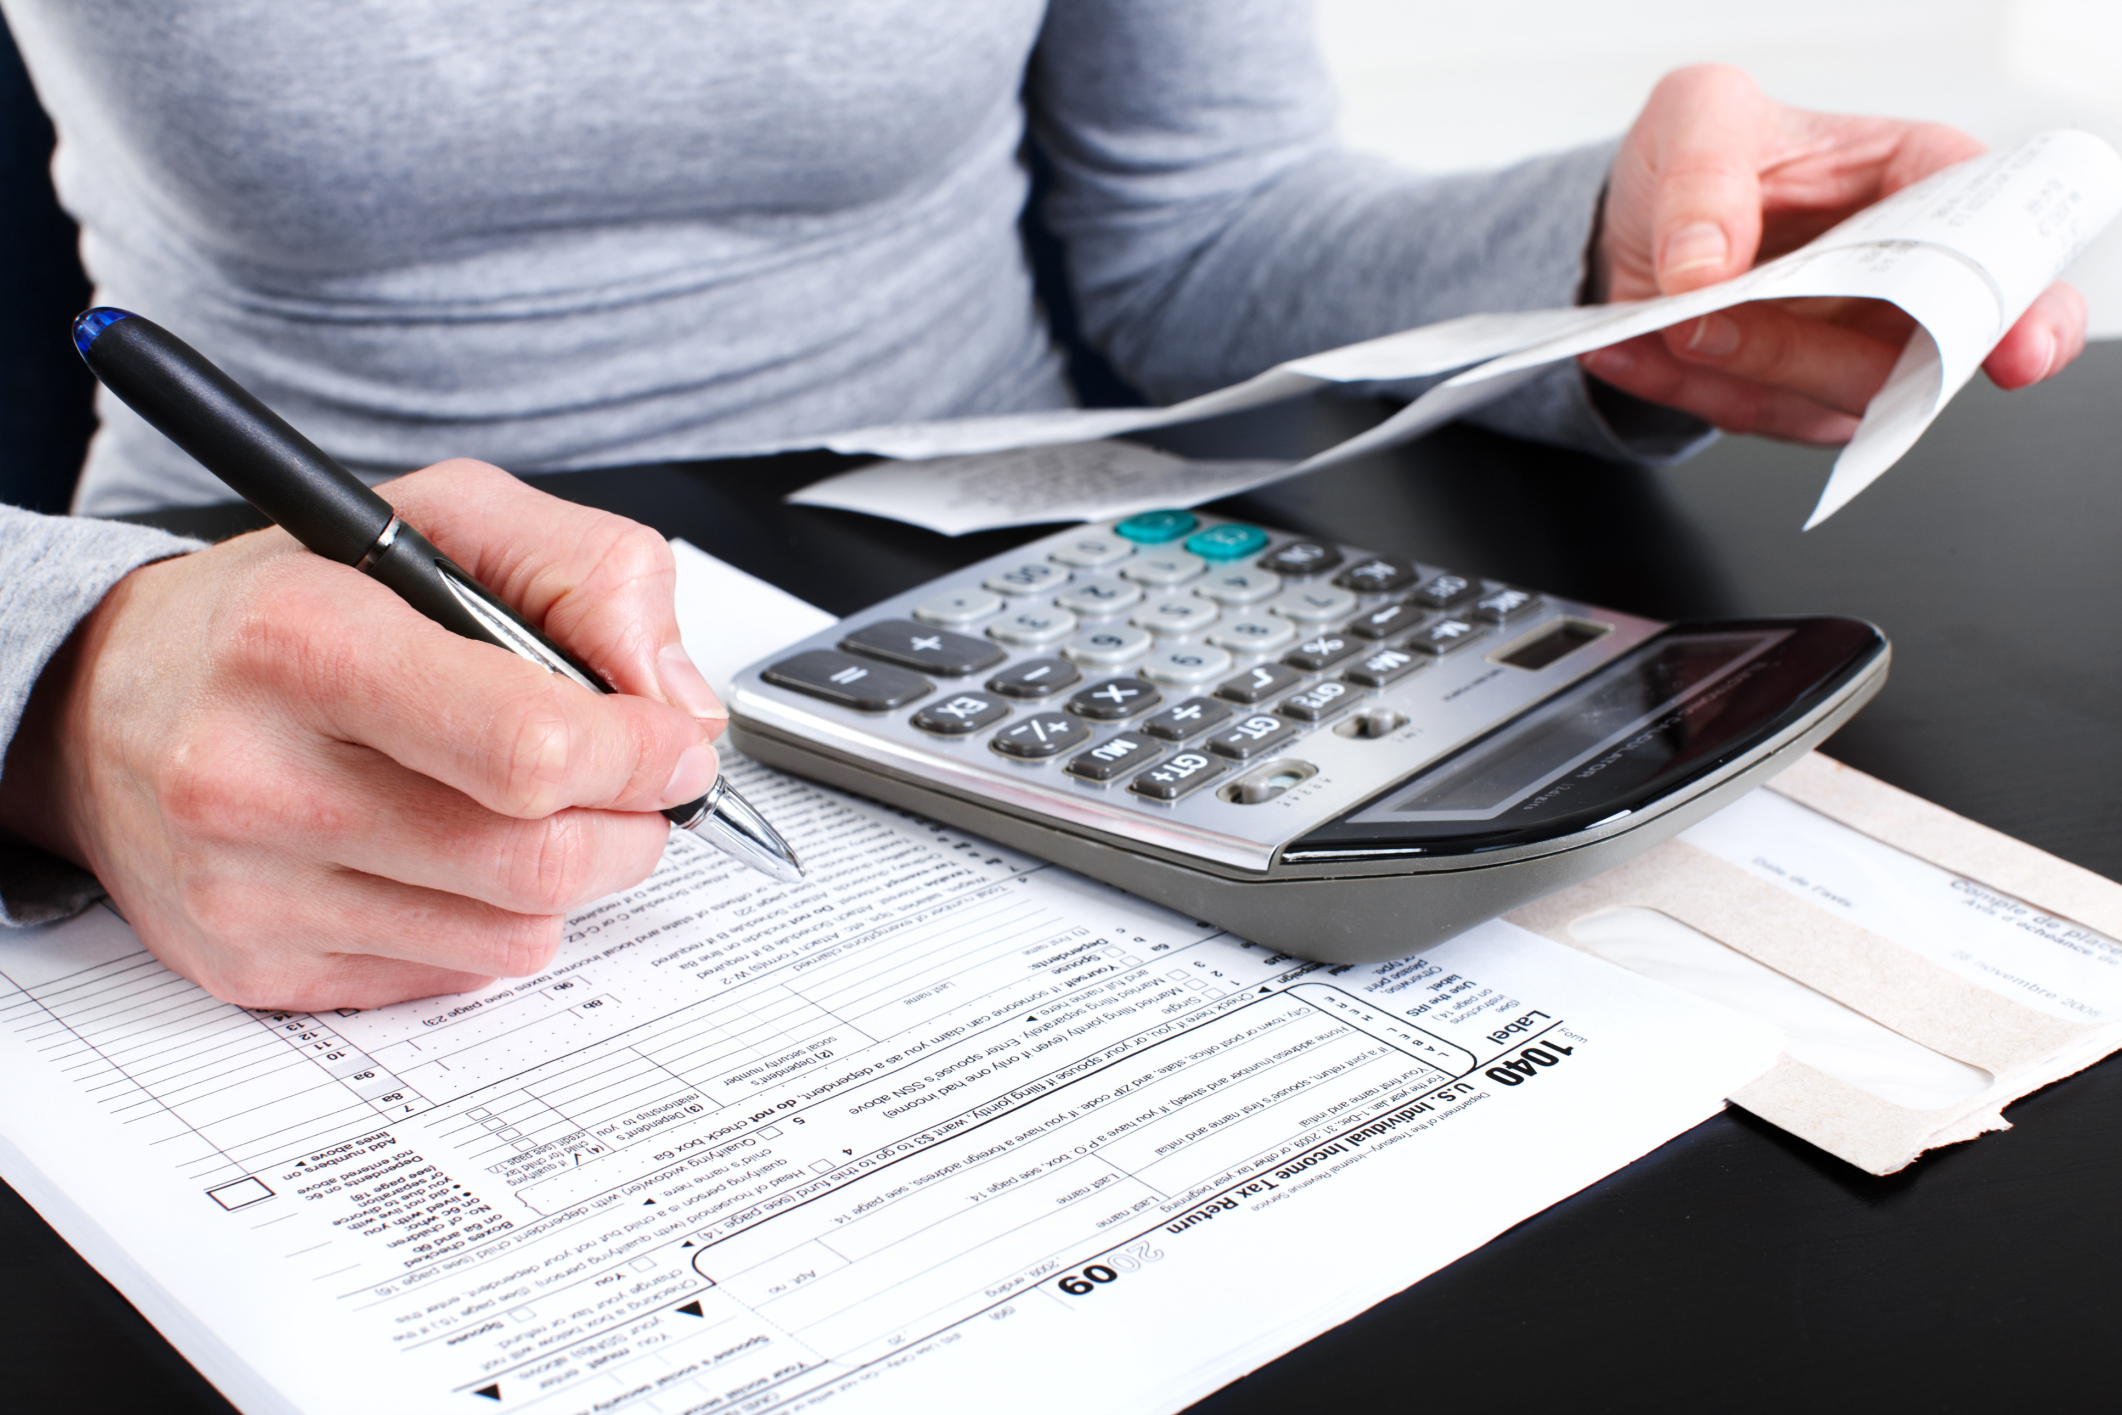 Tips for kicking off tax season